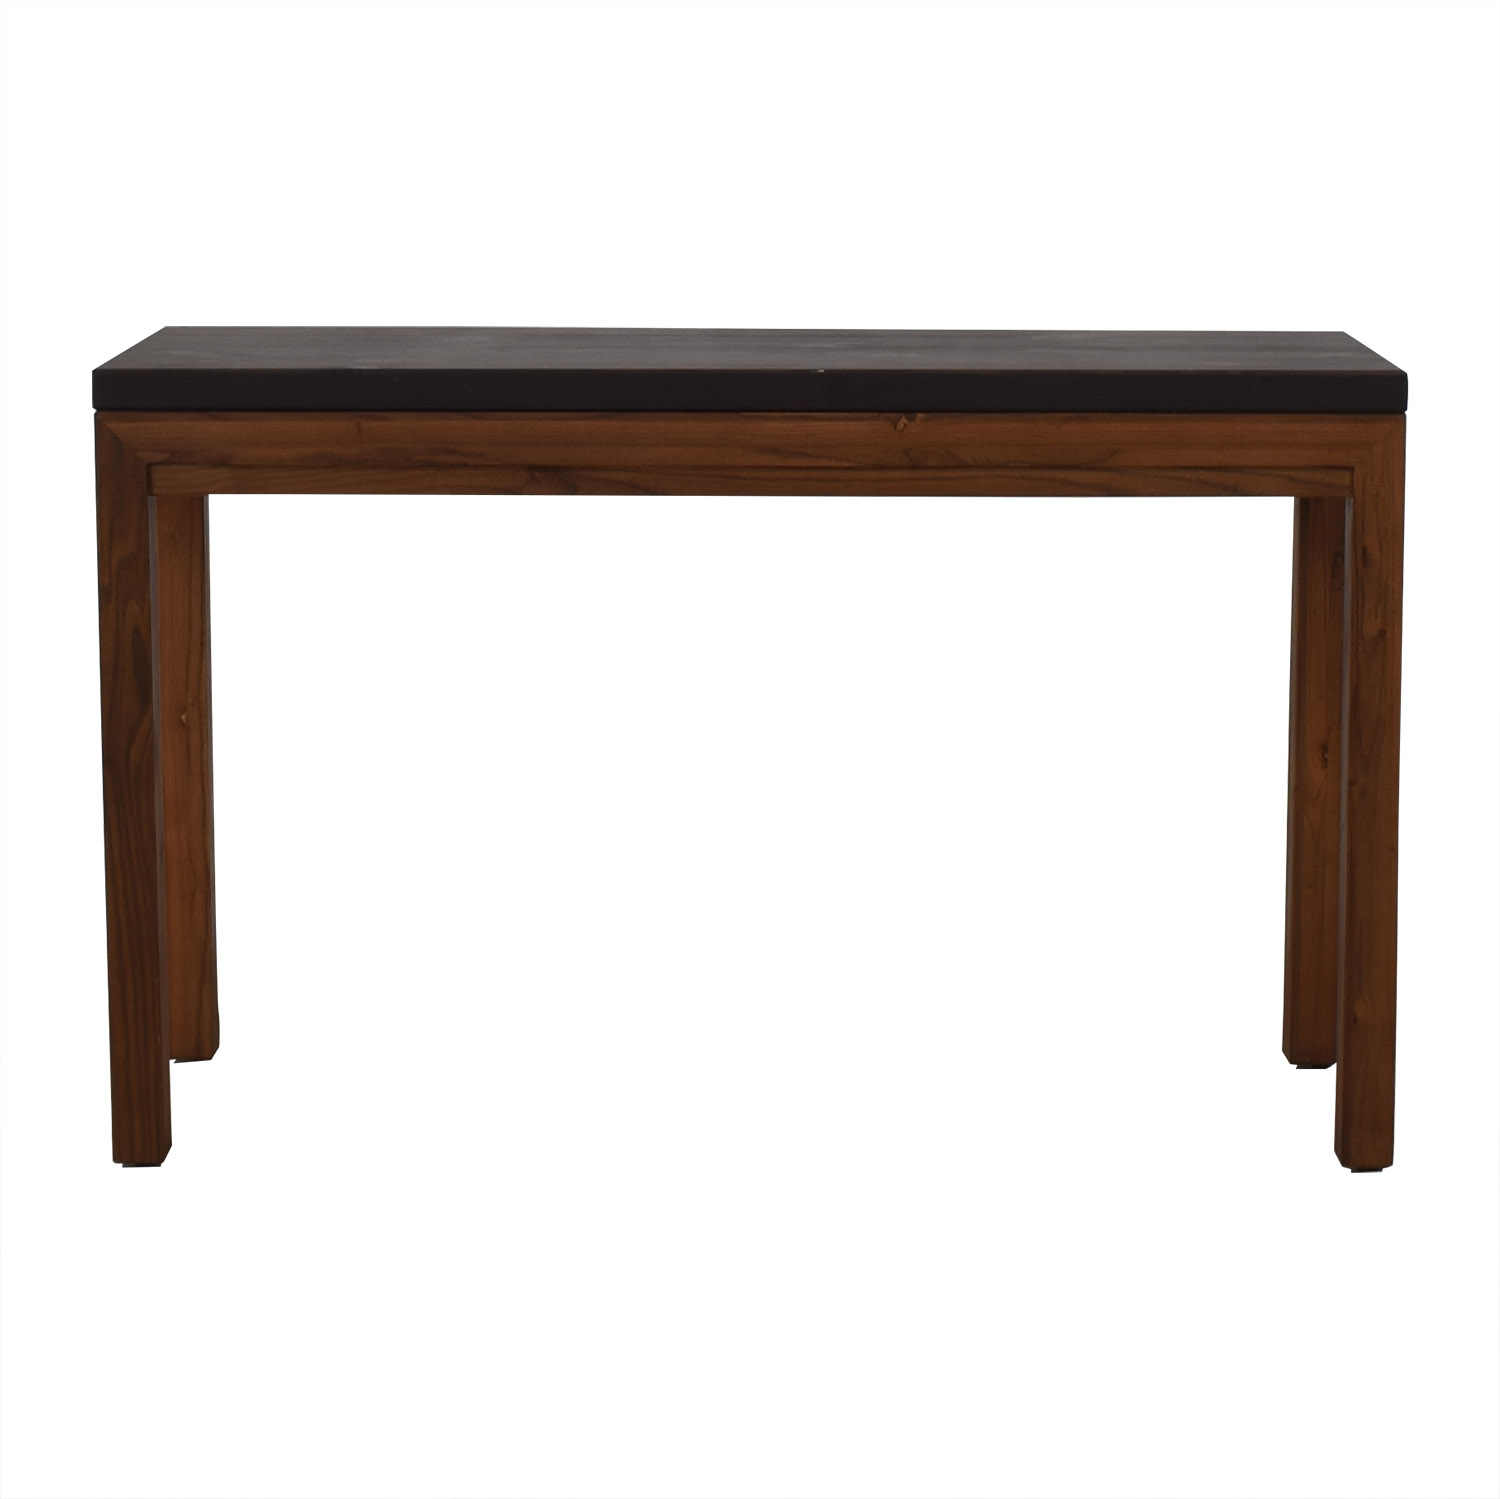 Crate & Barrel Crate & Barrel Parsons High Dining Table price